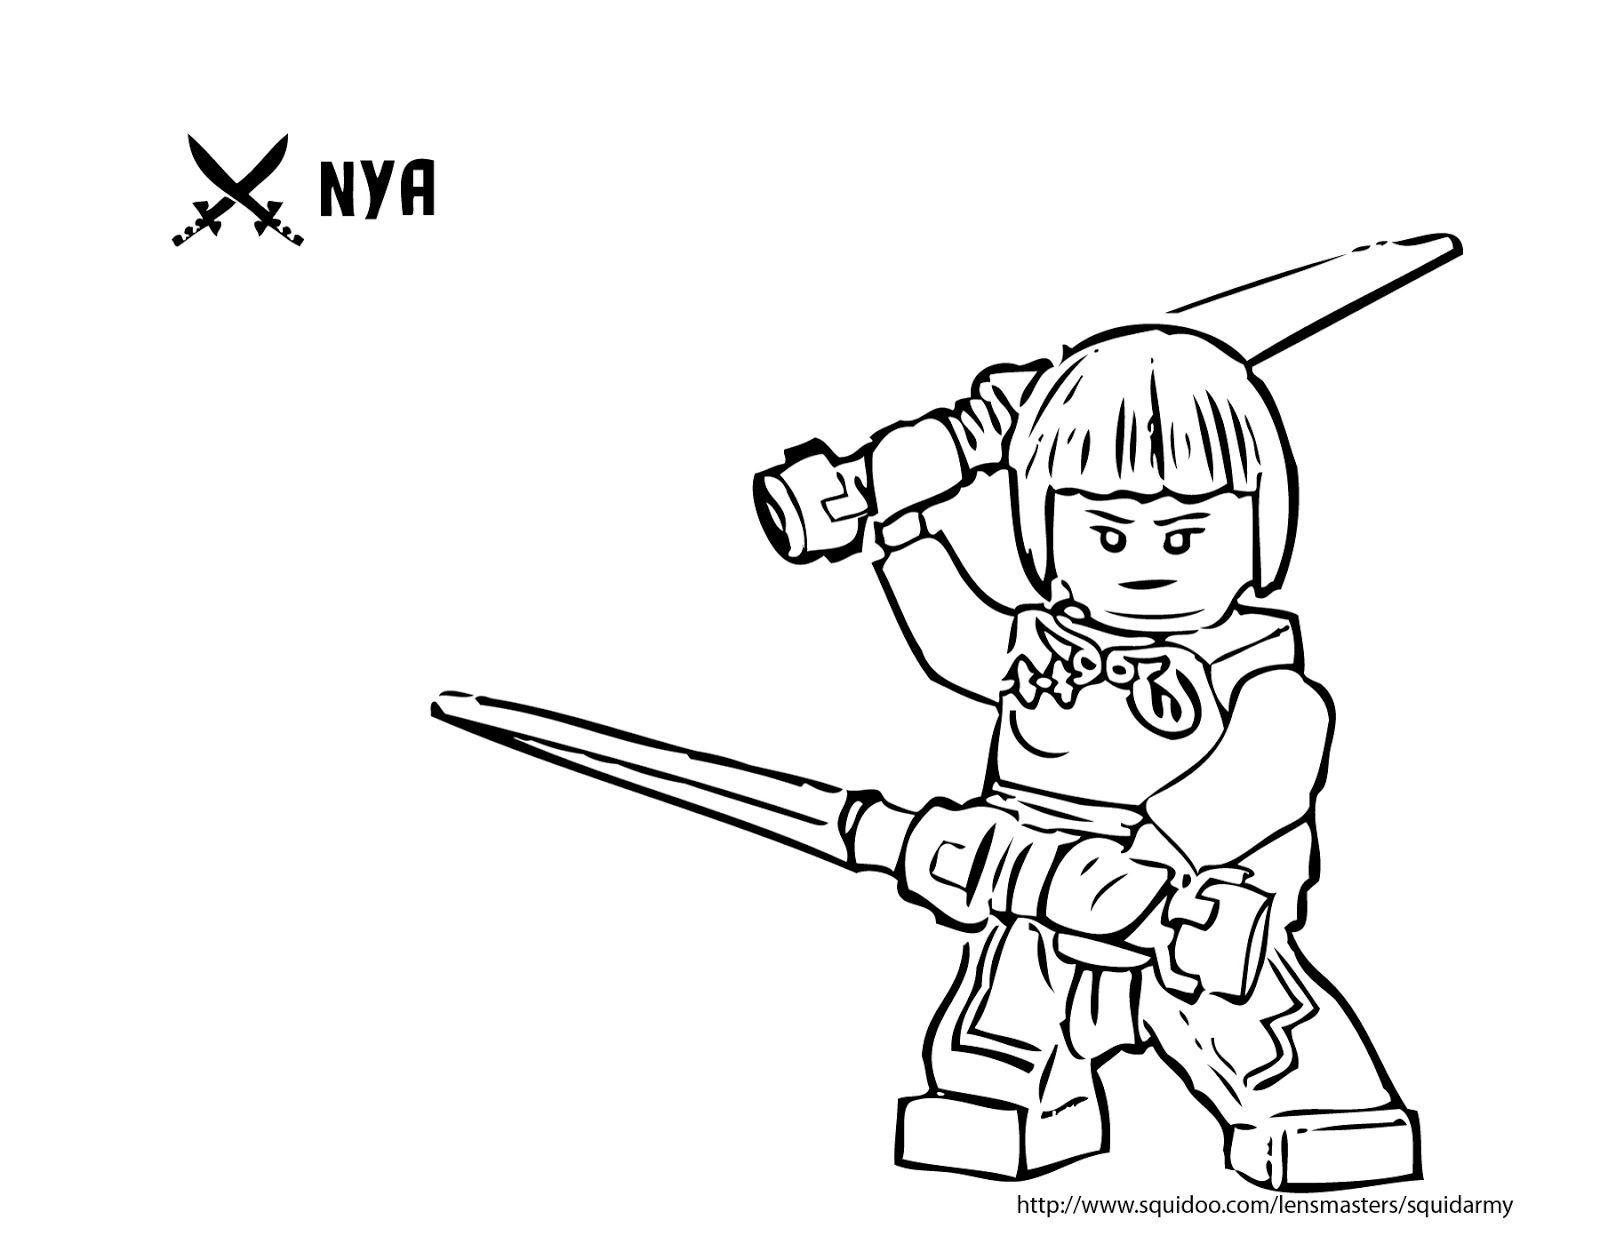 Lego Ninjago Nya Coloring Pages Ninjago Coloring Pages Lego Coloring Pages Lego Ninjago Nya